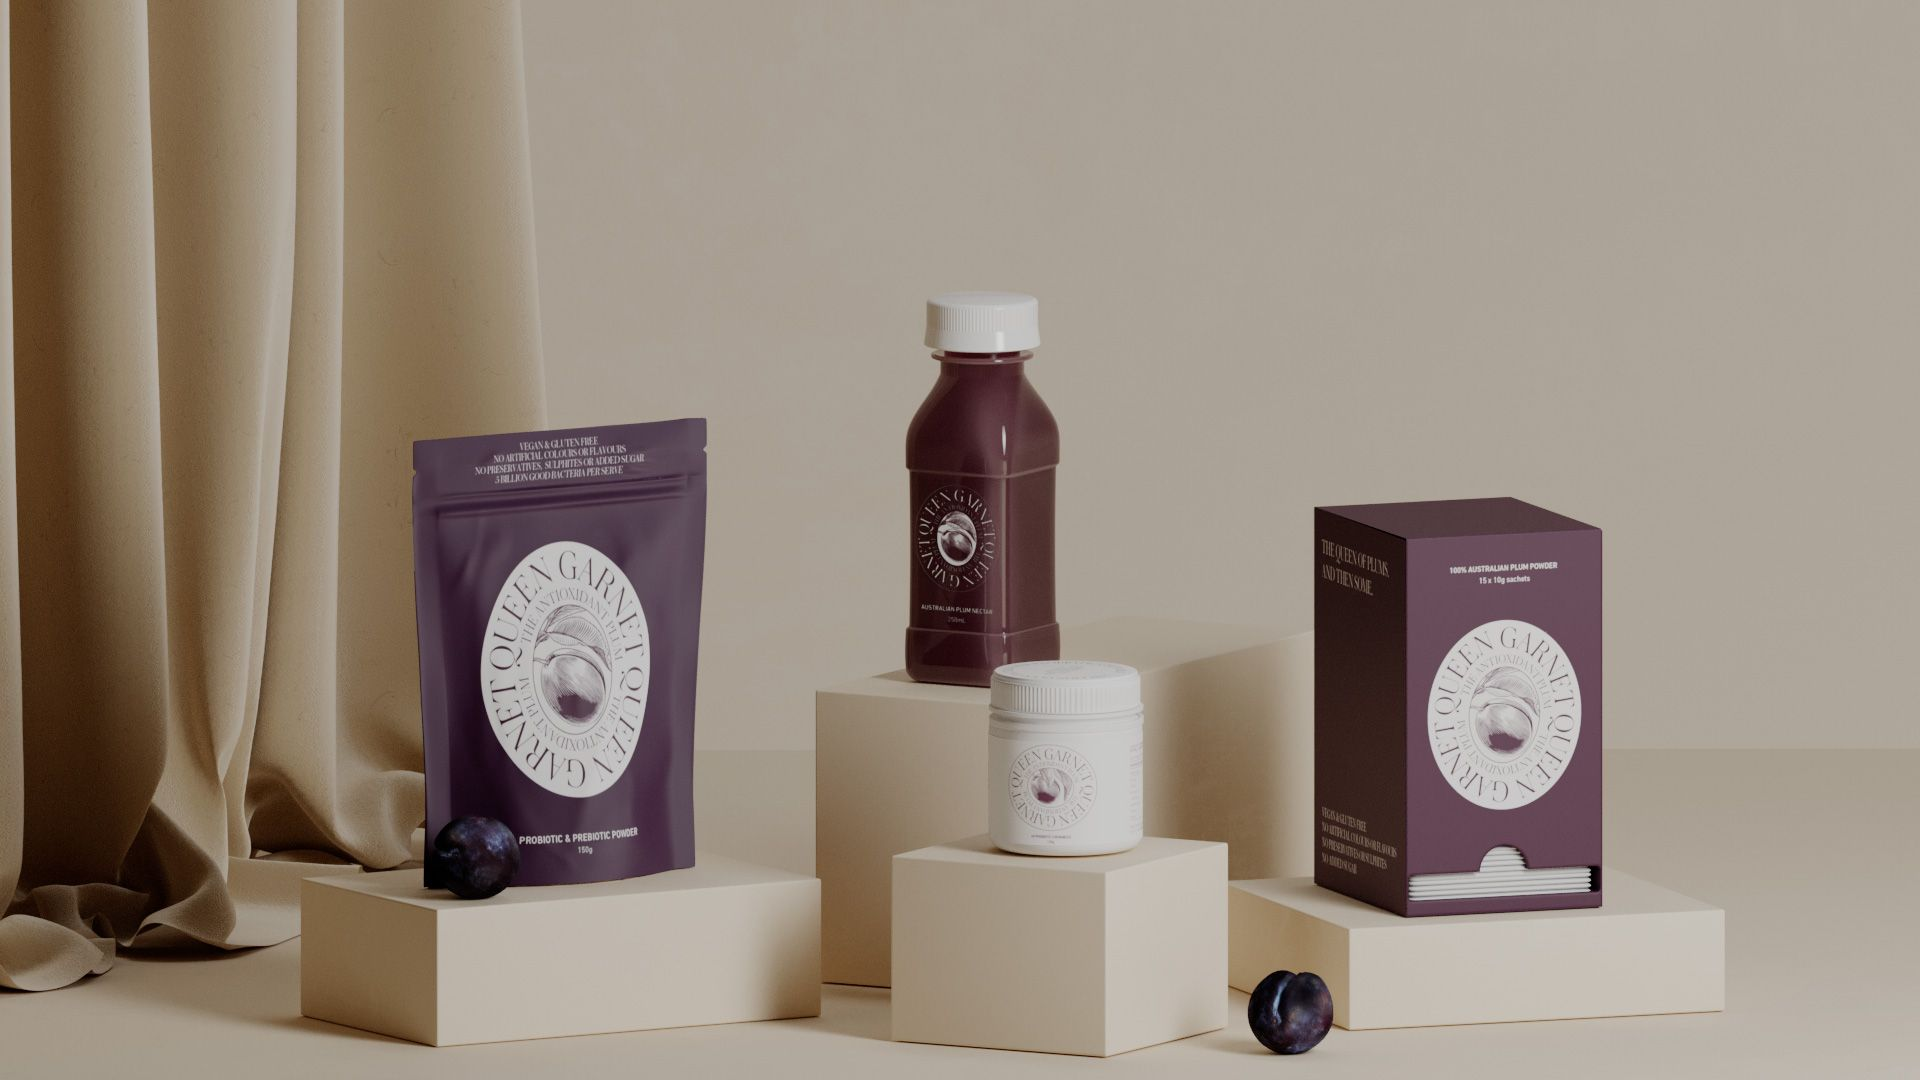 The range of Queen Garnet products sitting on a cream coloured background